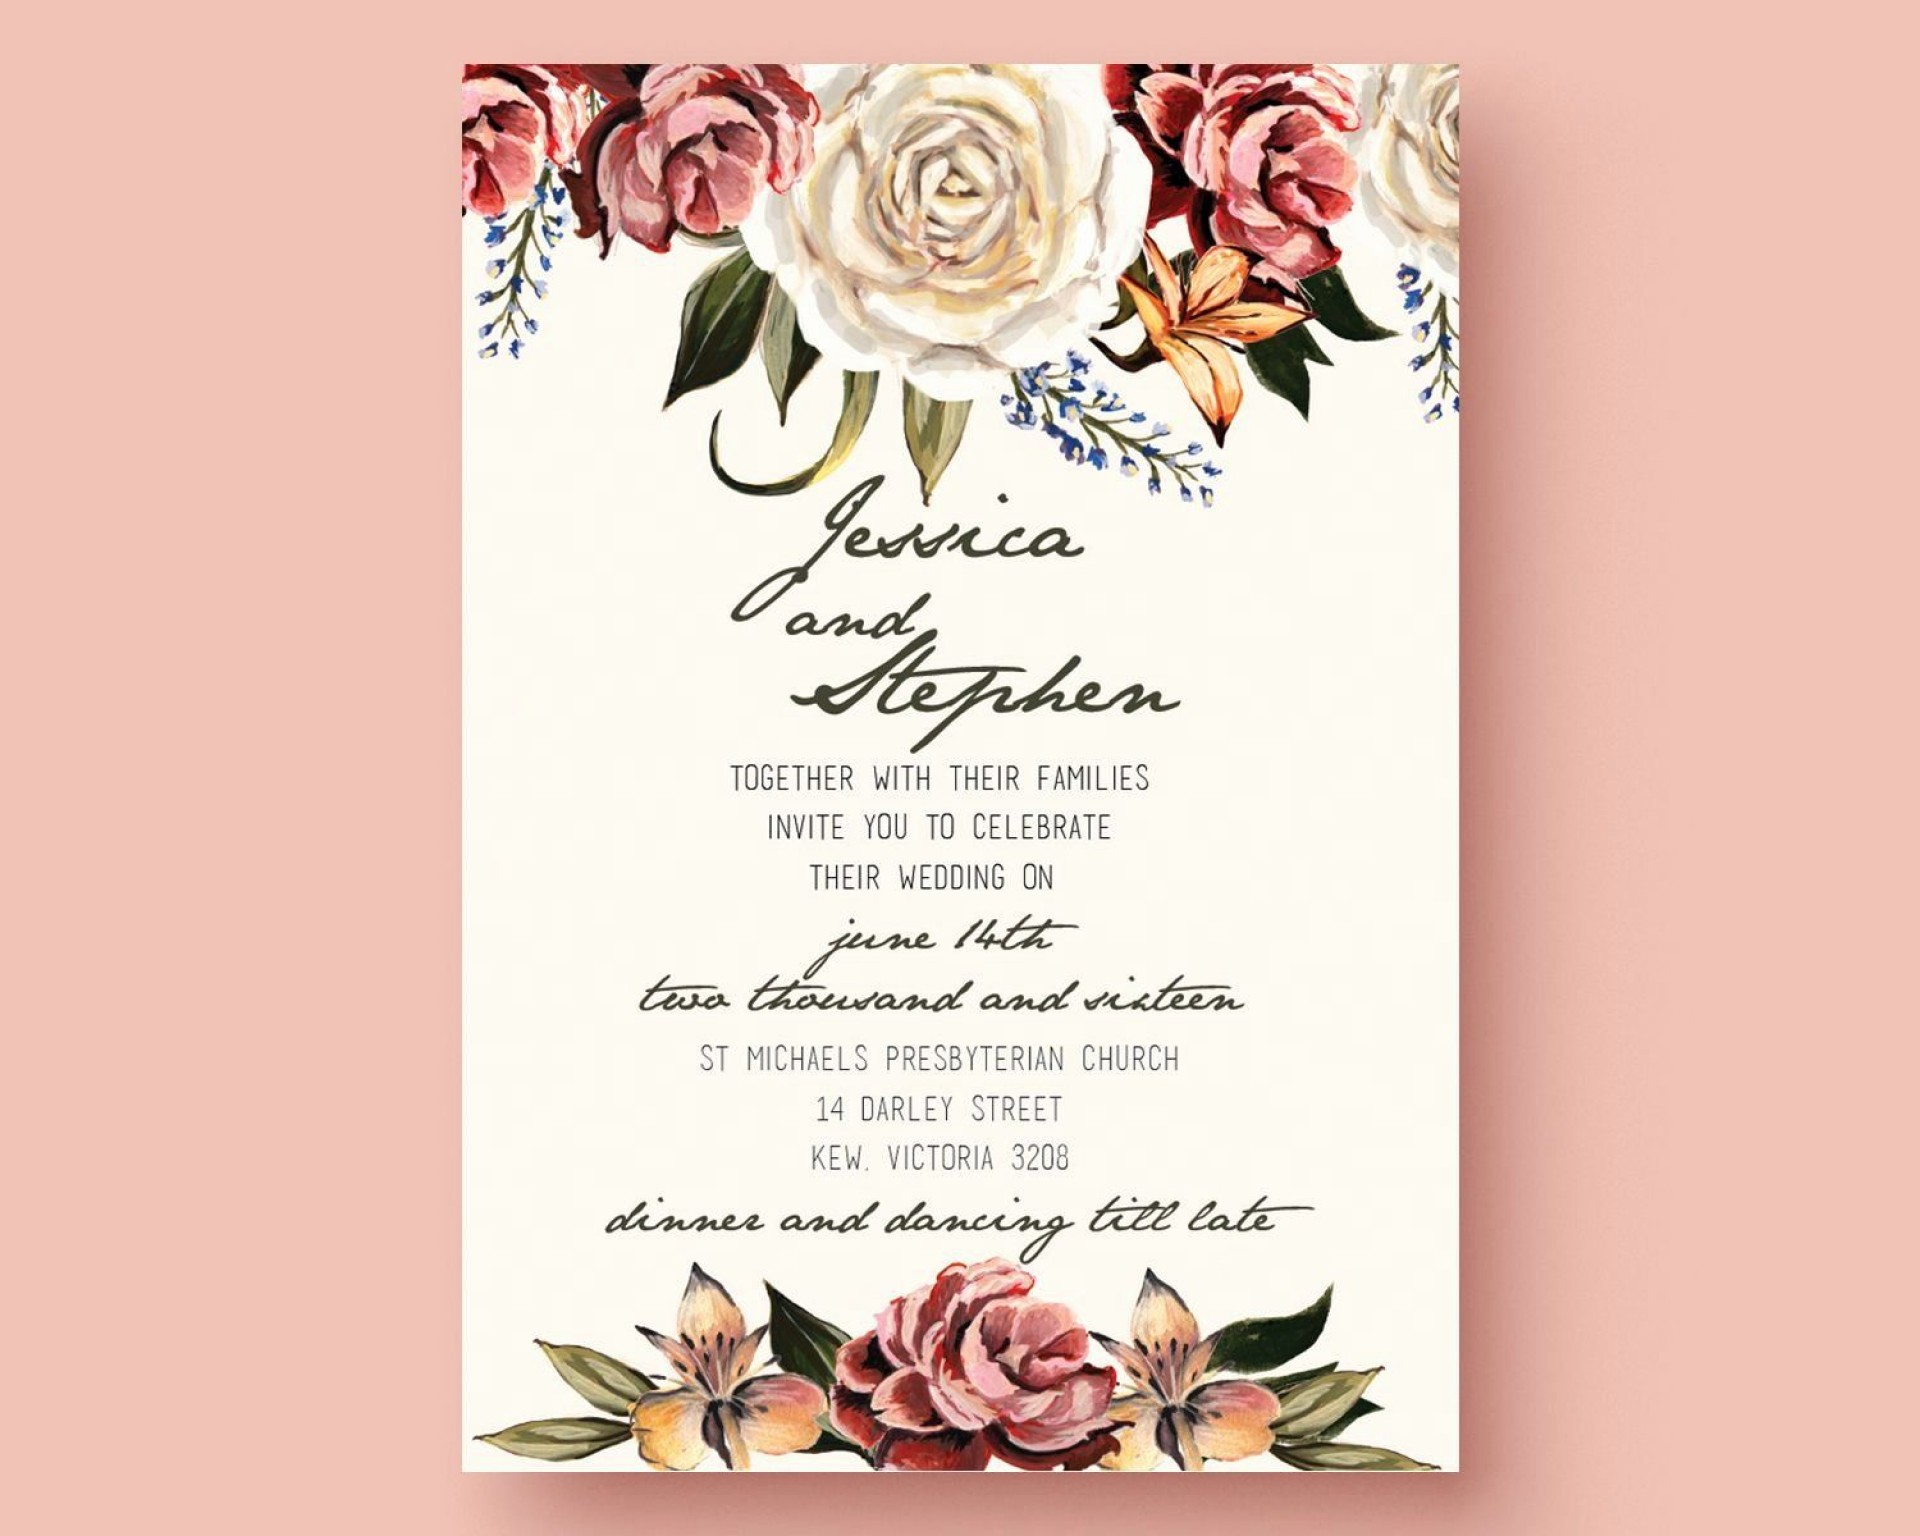 001 Outstanding Printable Wedding Invitation Template Highest Quality  Free For Microsoft Word Vintage1920